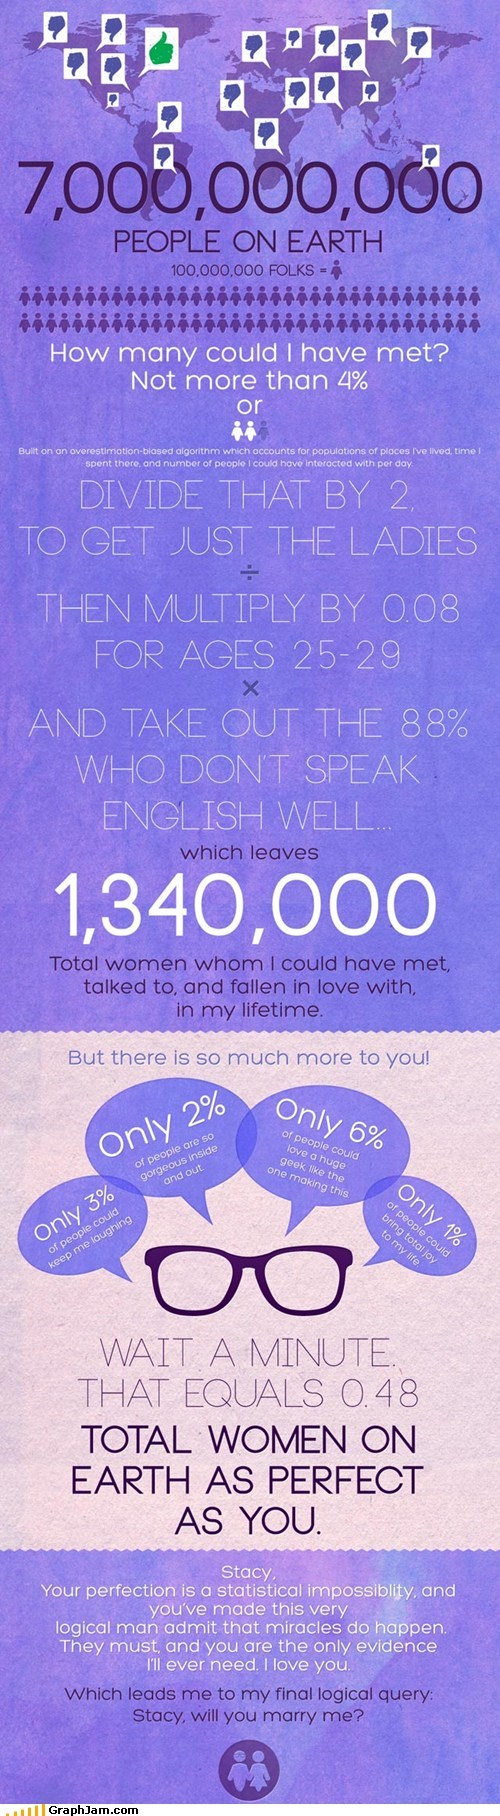 best of week,infographic,nerdy,proposal,relationships,Valentines day